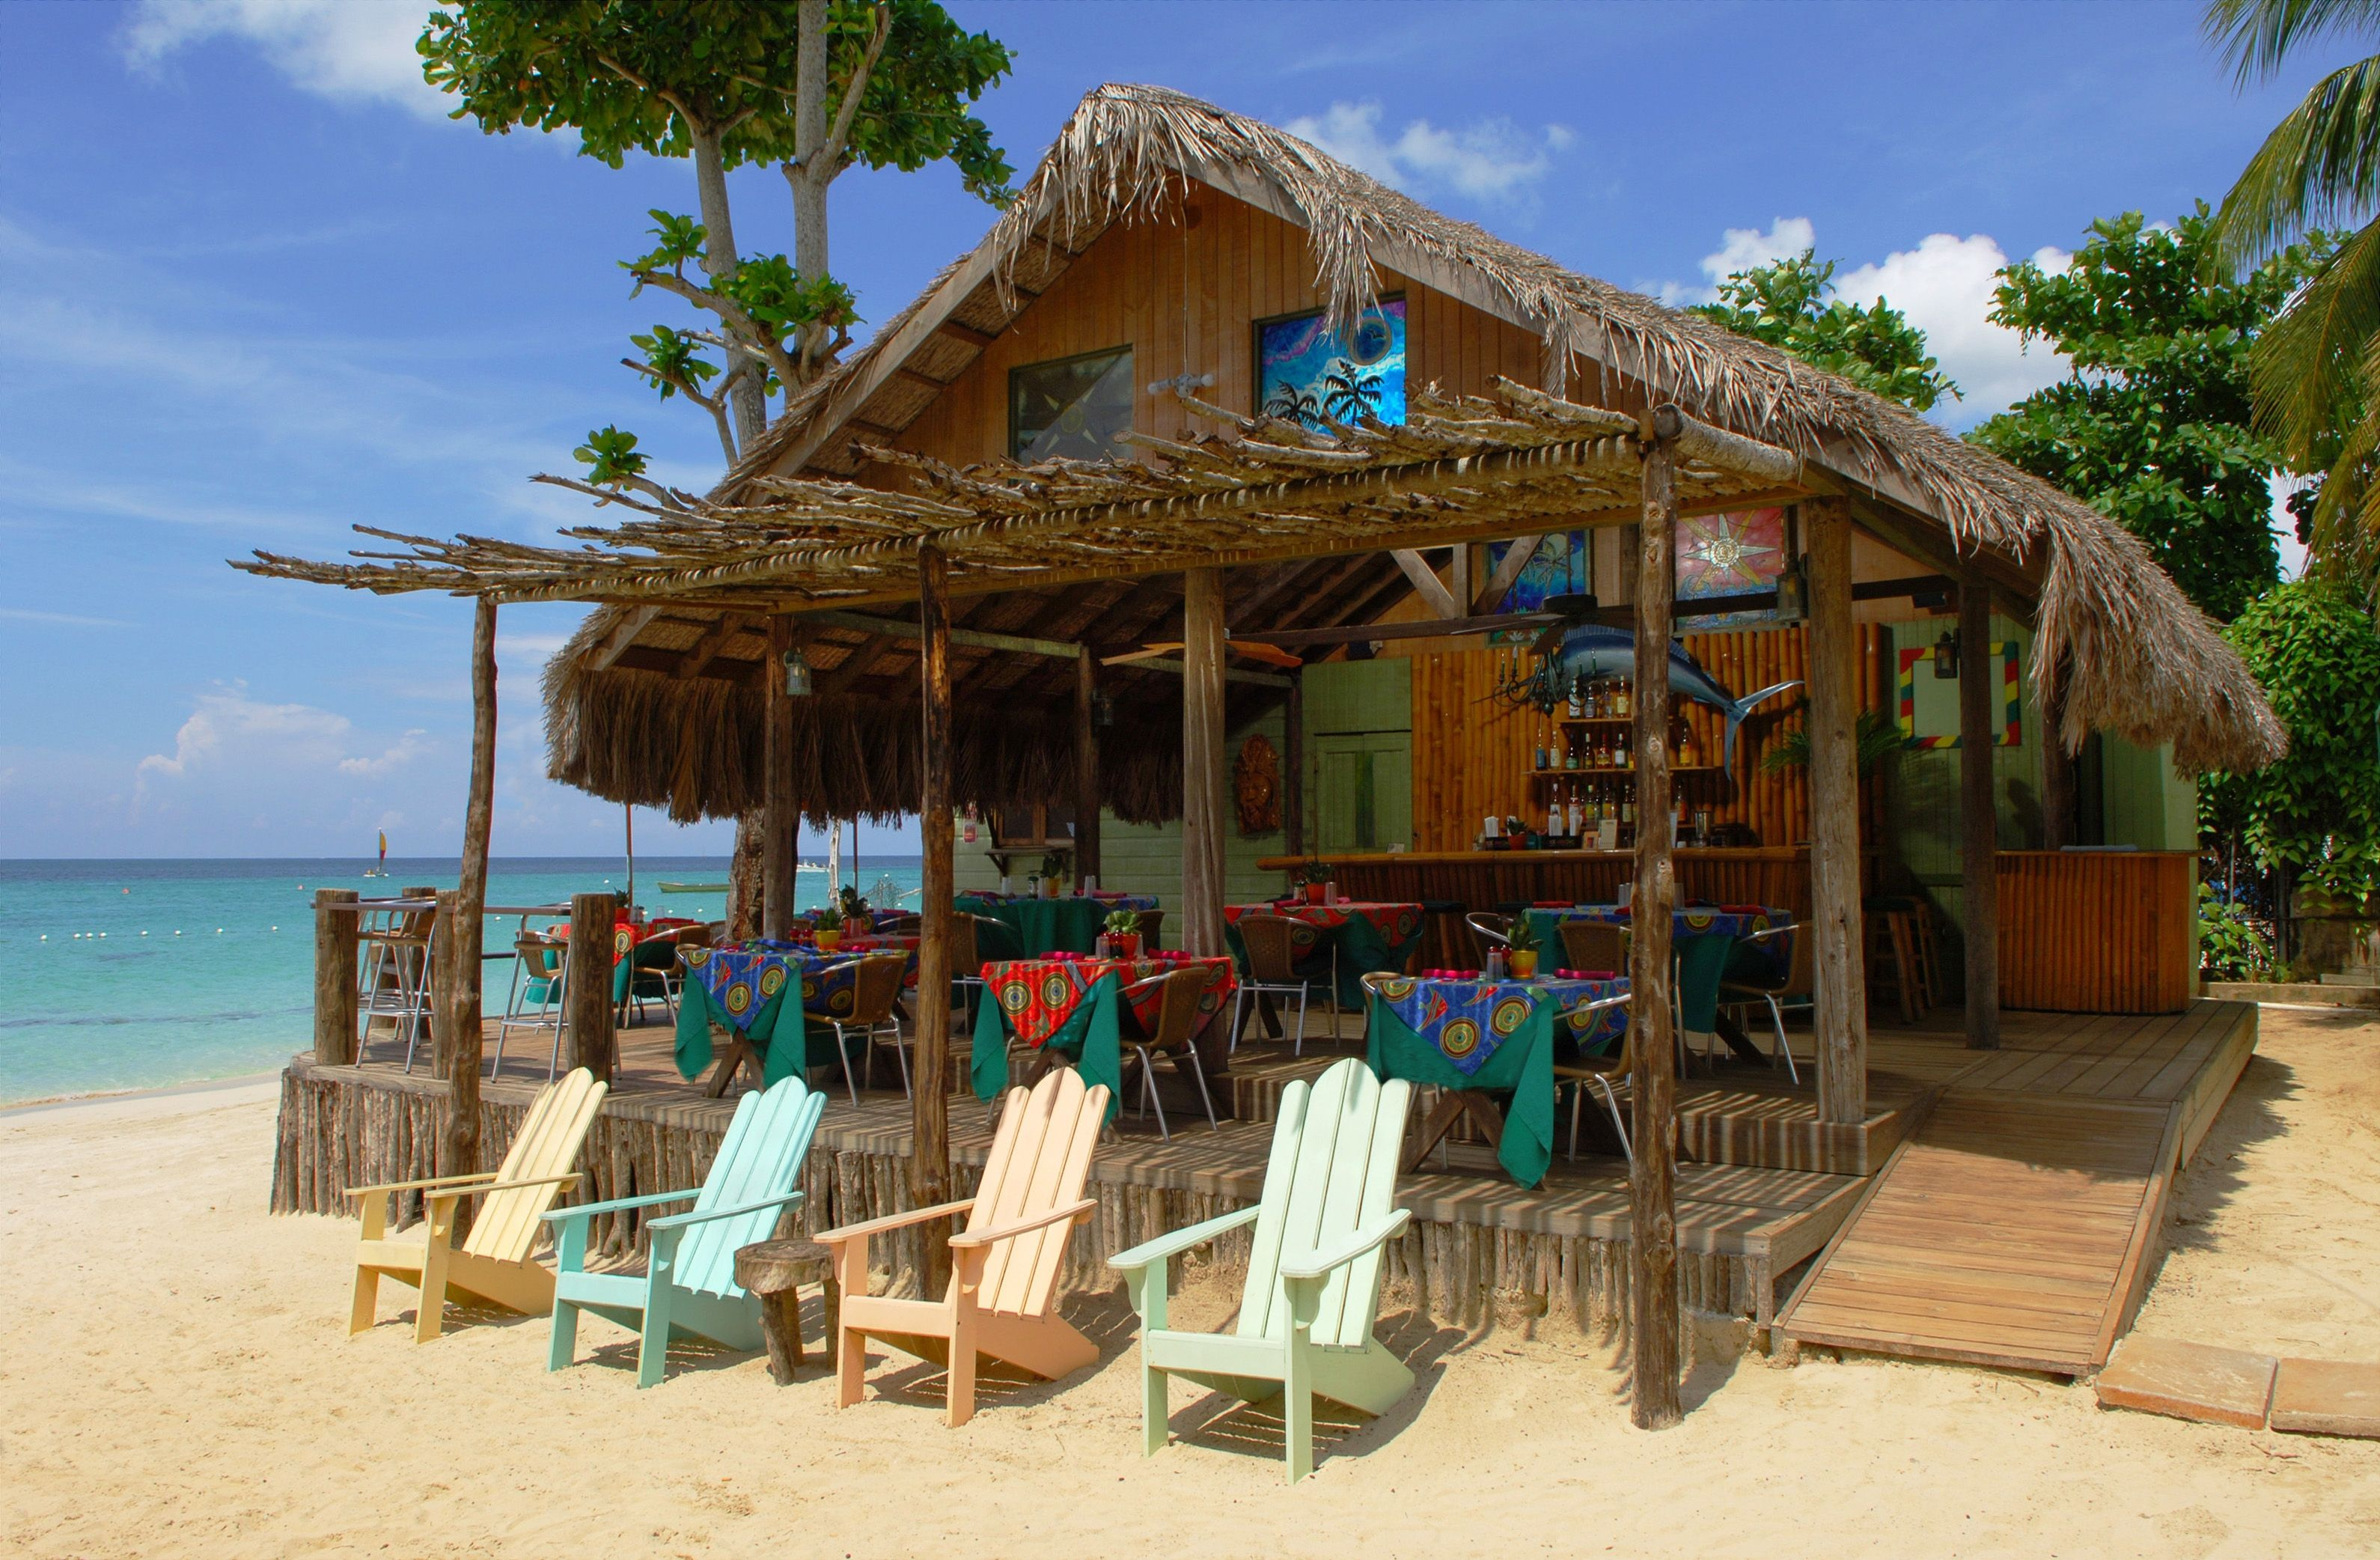 Beach bars filename country country beach bar for Beach bar ideas